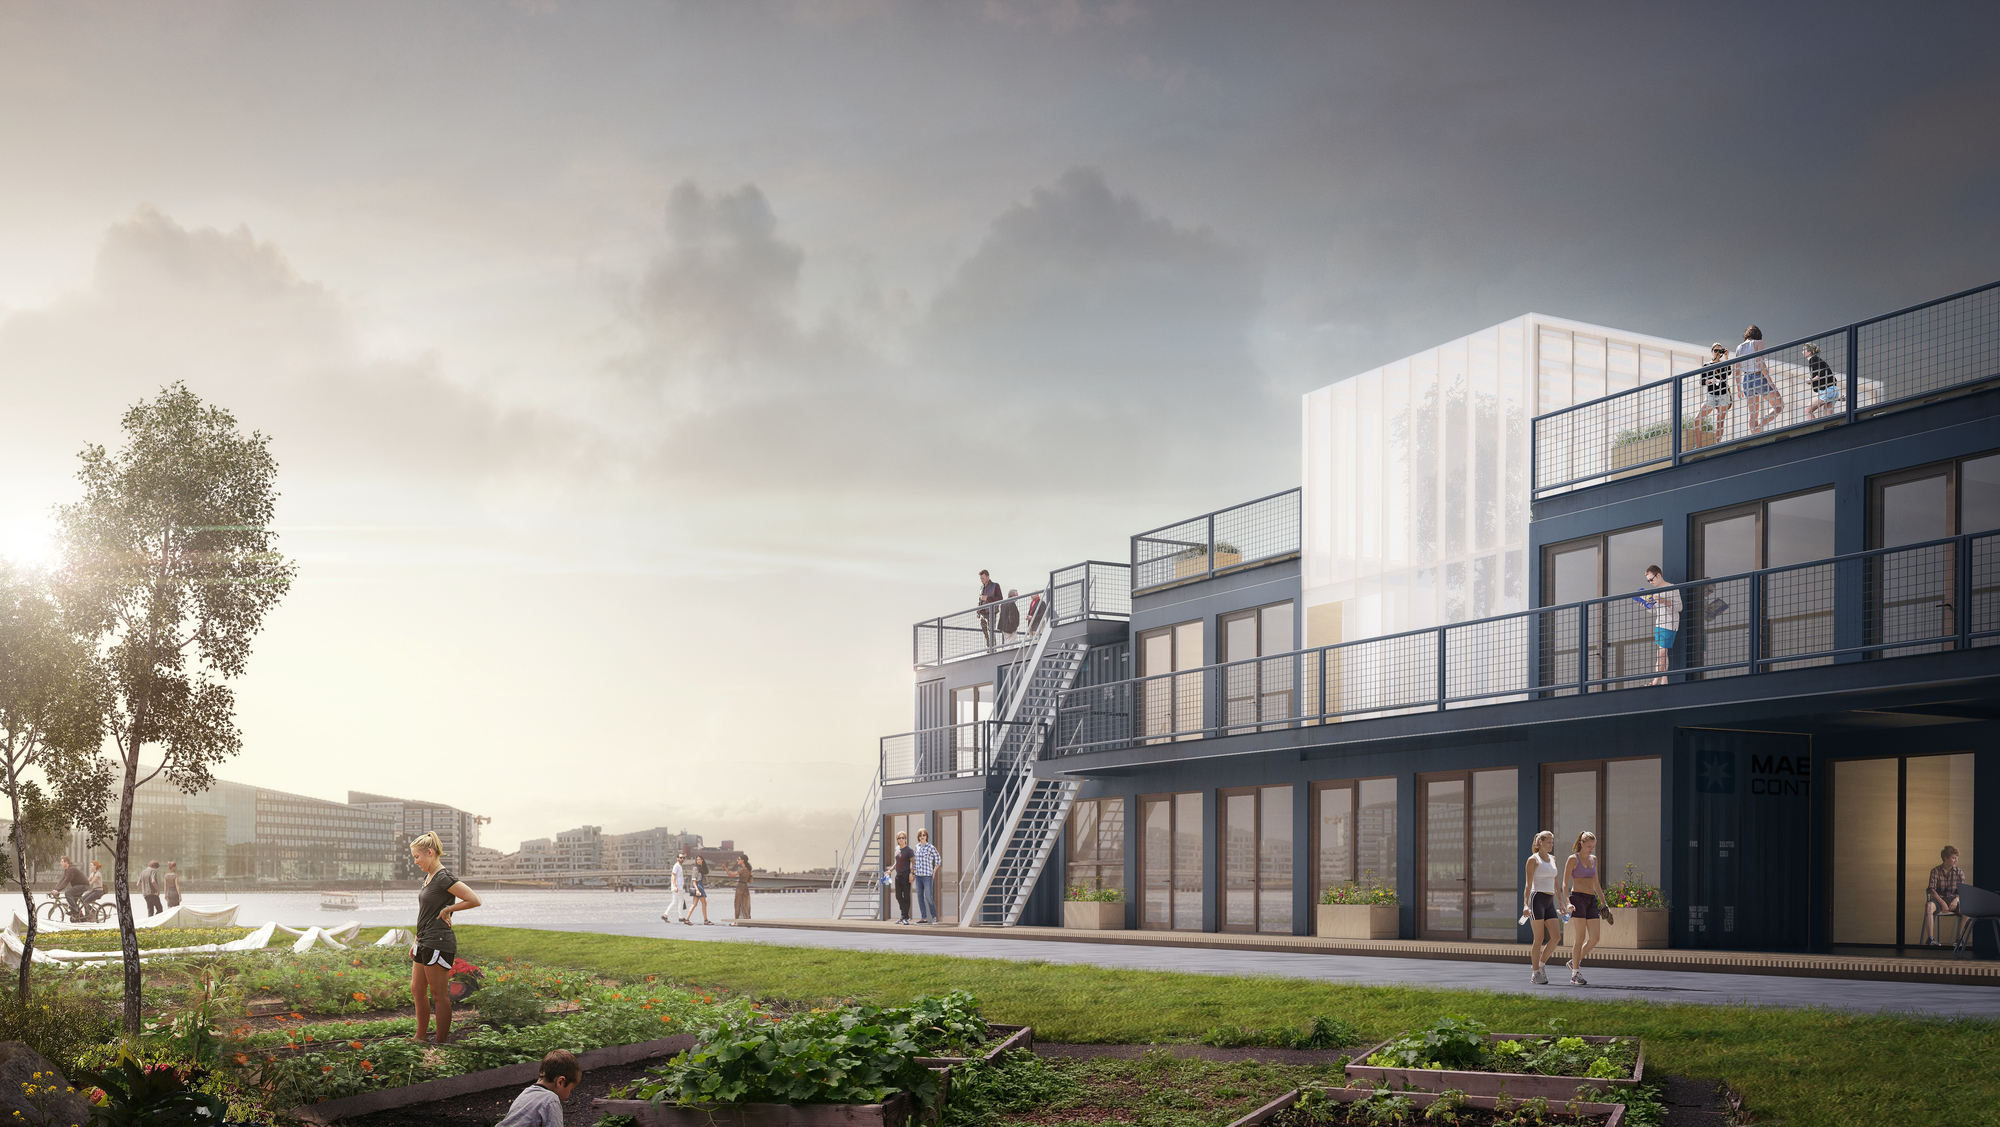 How a Transportable Student Village Could Alleviate